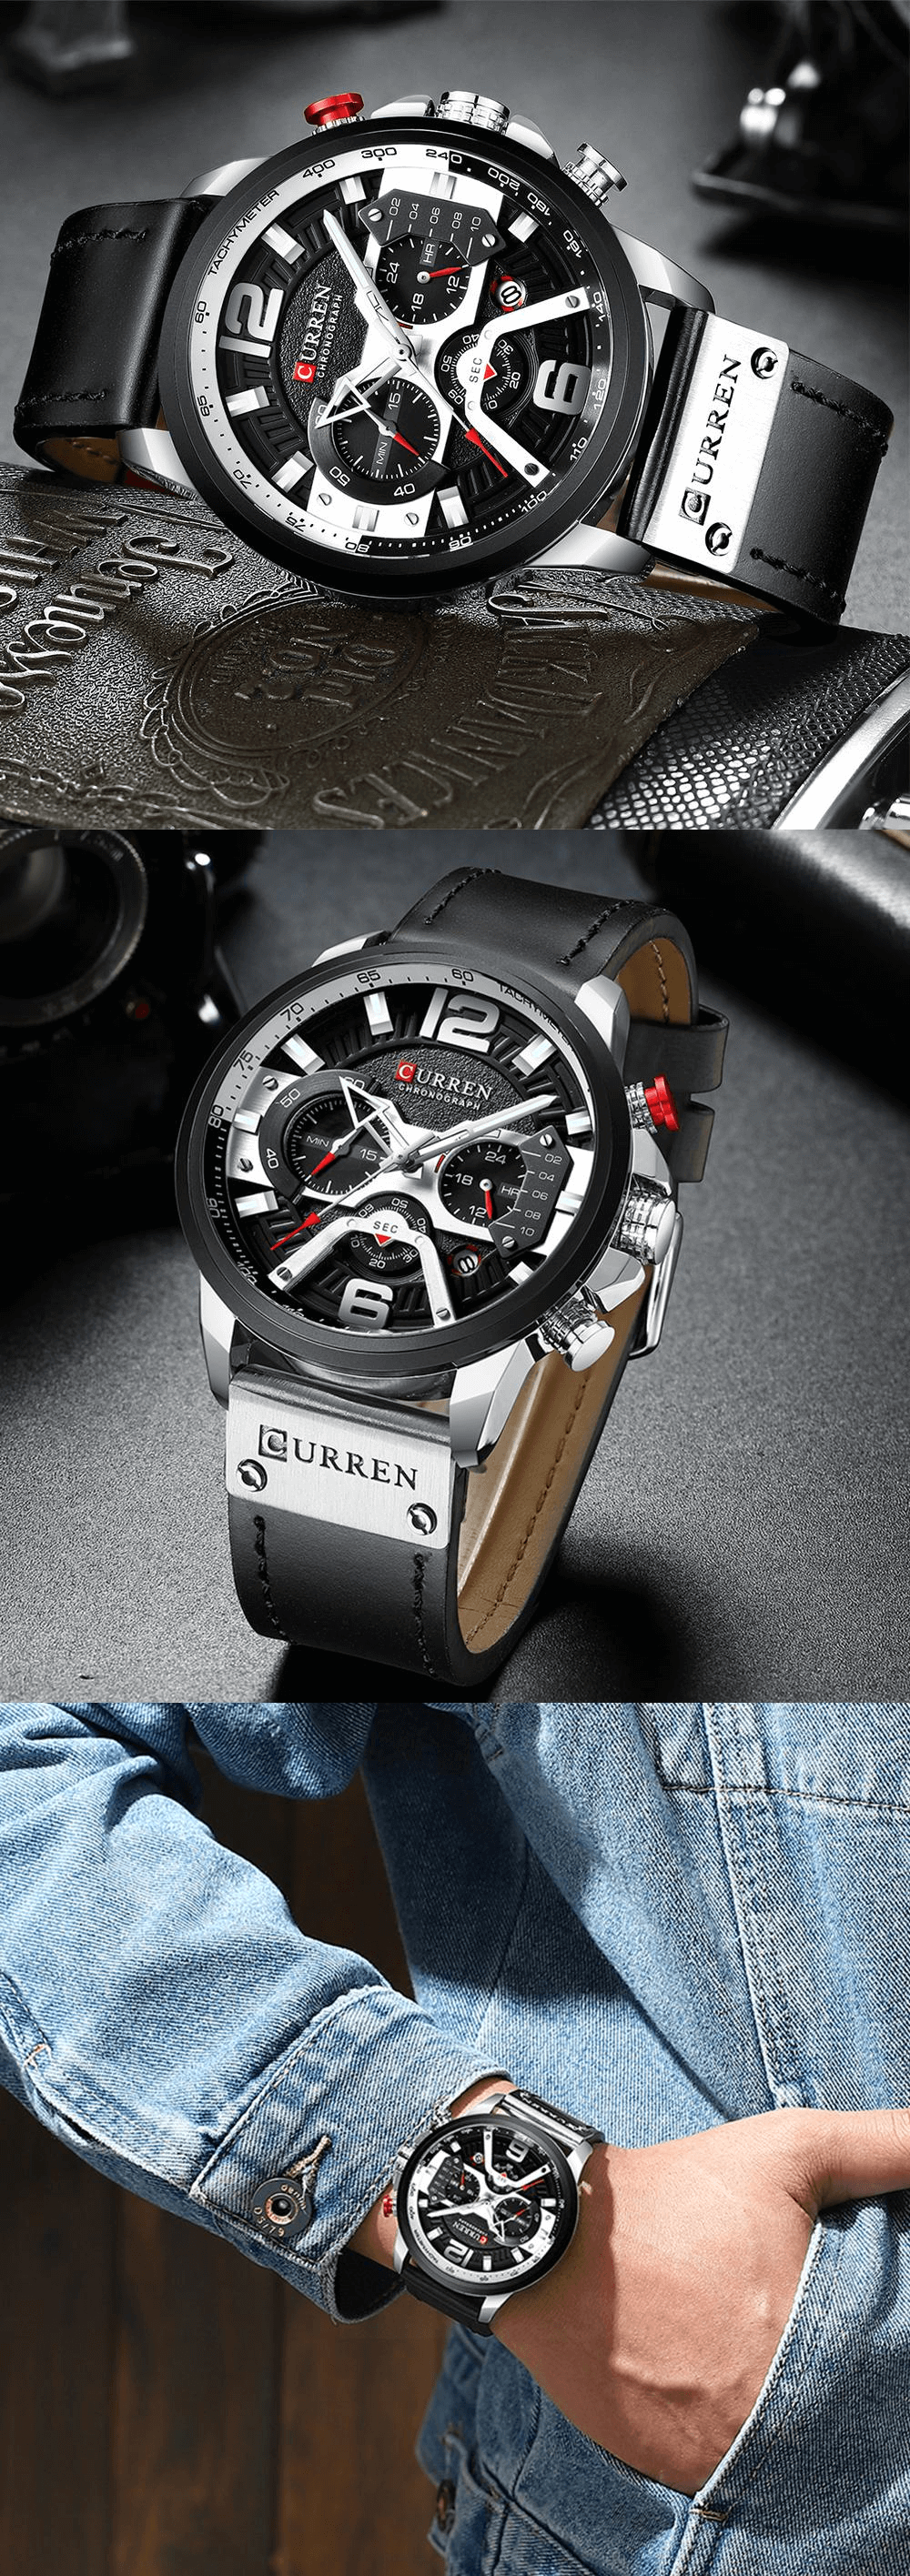 Curren watch Silver black